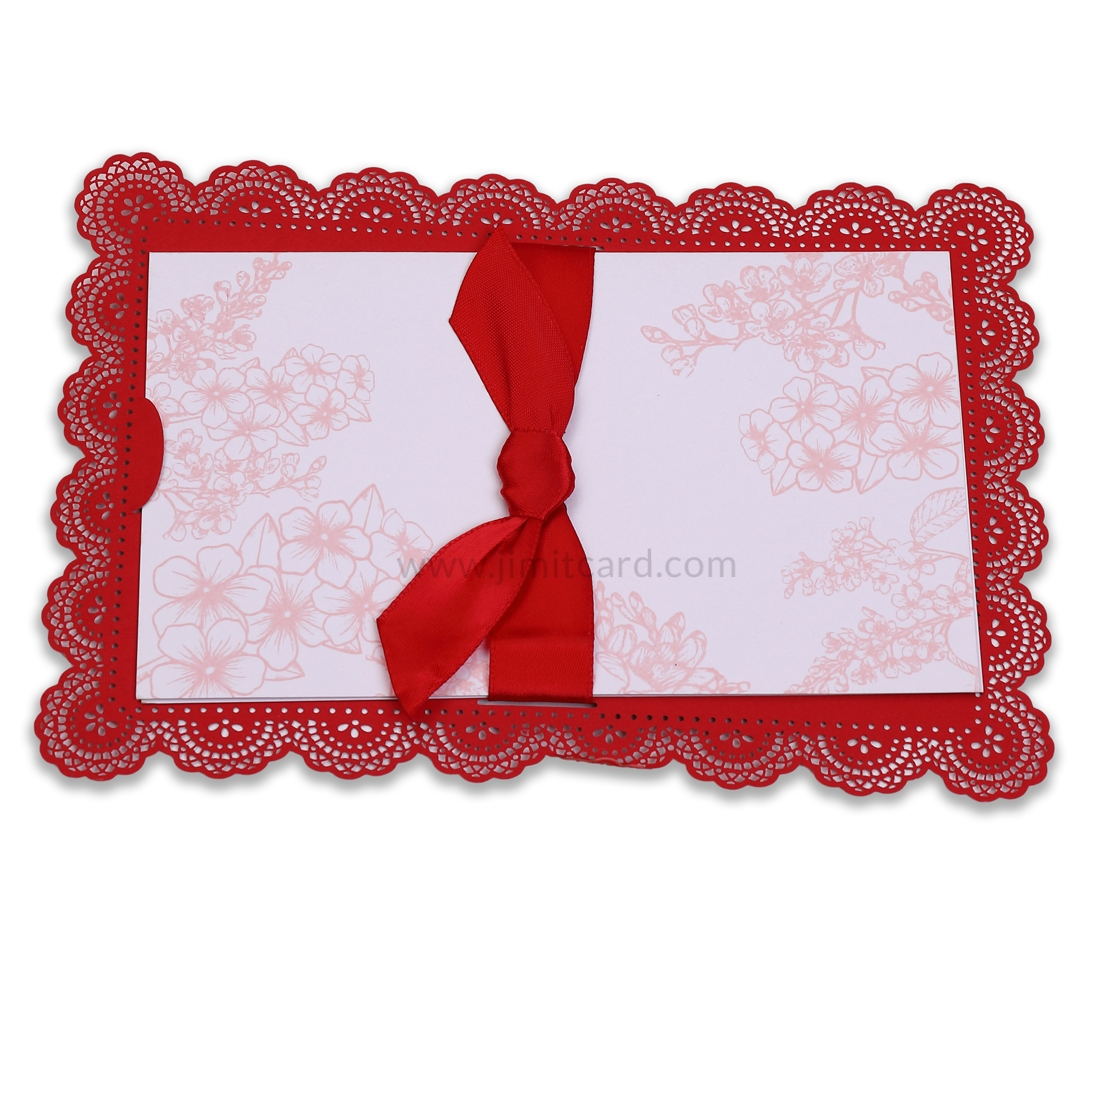 Red Color Wedding Card With Laser Cut Border and Red Ribbon-12189